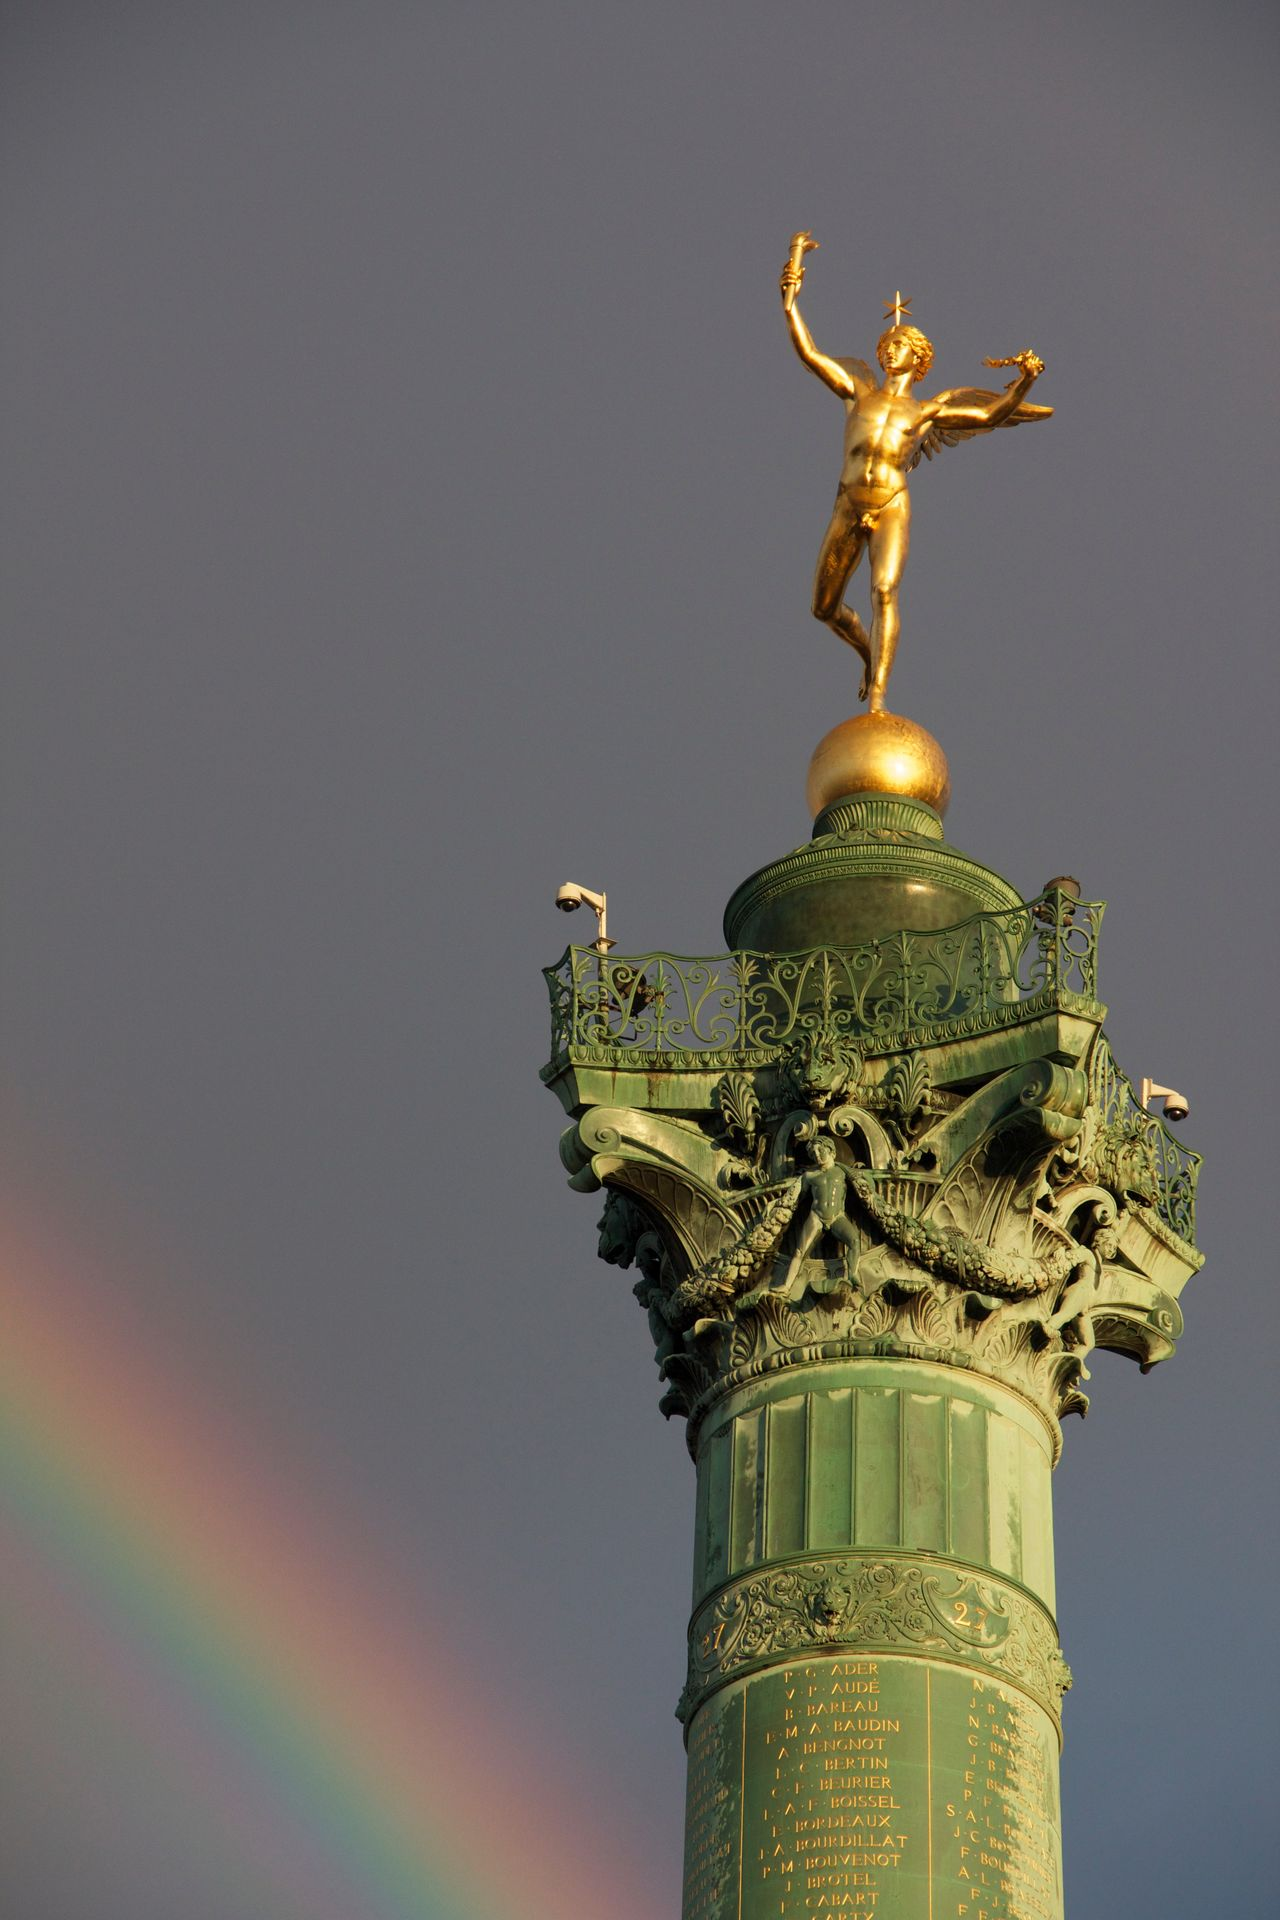 Sun on Monument Art Capital Cities  Day Famous Place Famous Places Gold Colored Golden High Section Low Angle View Monument No People Rain Rainbow Sculpture Shine Sky Statue Tourism Travel Destinations The City Light